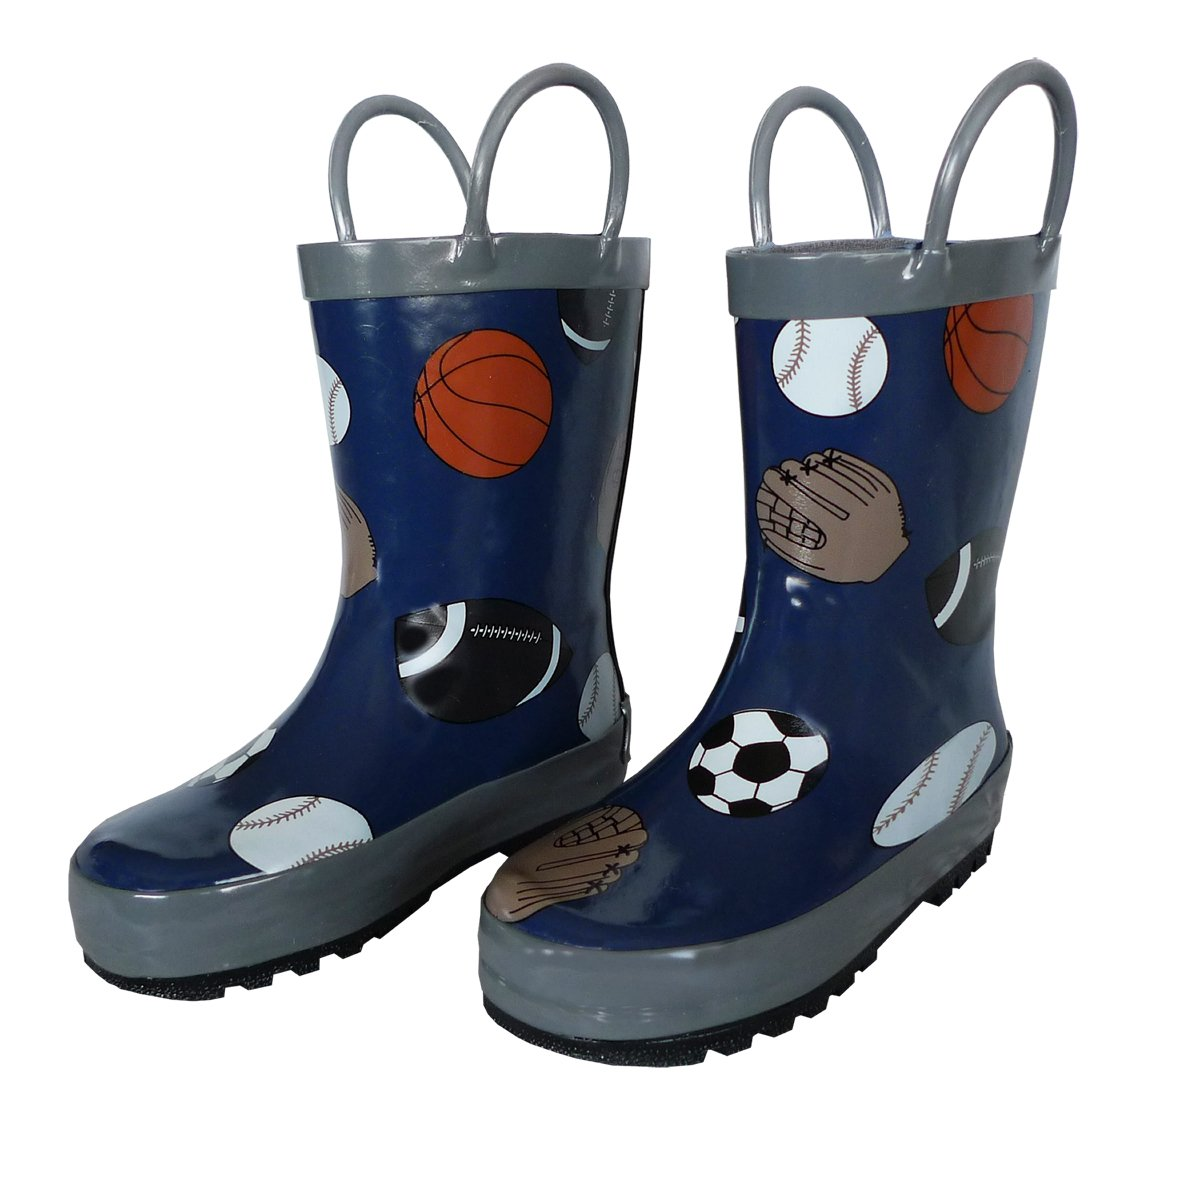 Foxfire for Kids Navy Rubber Boot with Gray Trim and Baseball, Football, Soccer and Basketball Pattern